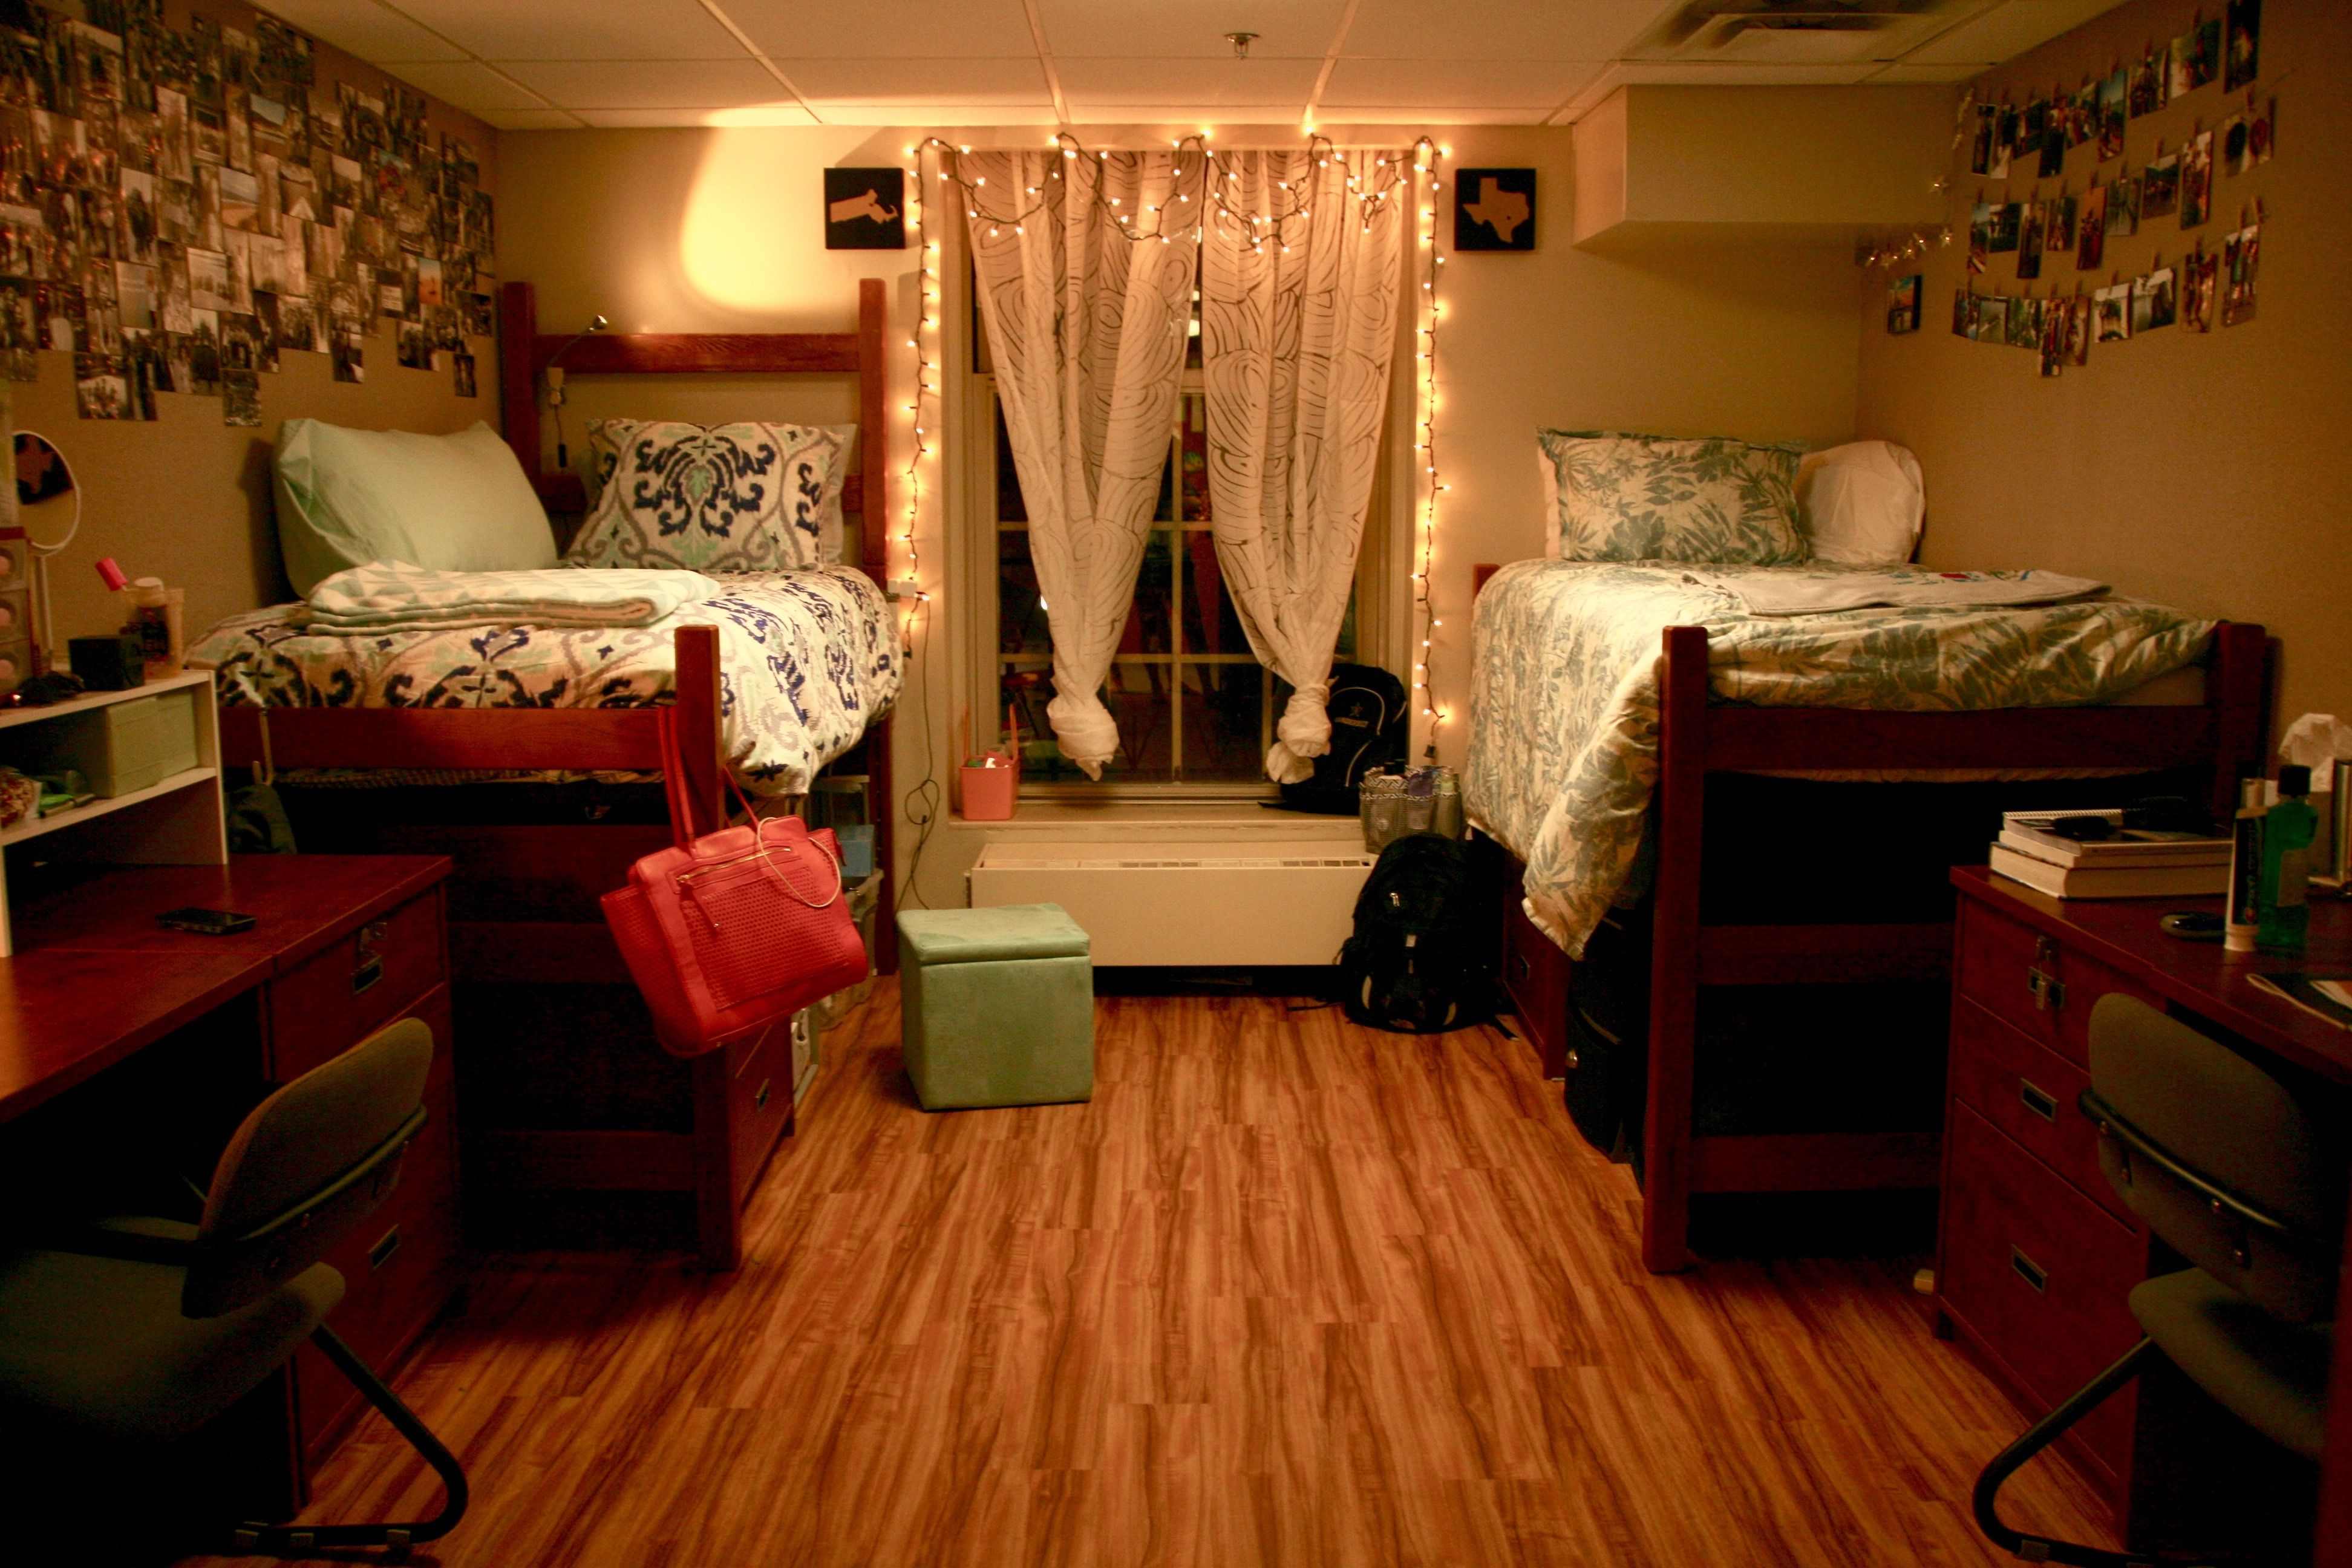 Love This Vanderbilt Dorm Room Soft Lighting And Matching Decor That Still Allows For Own